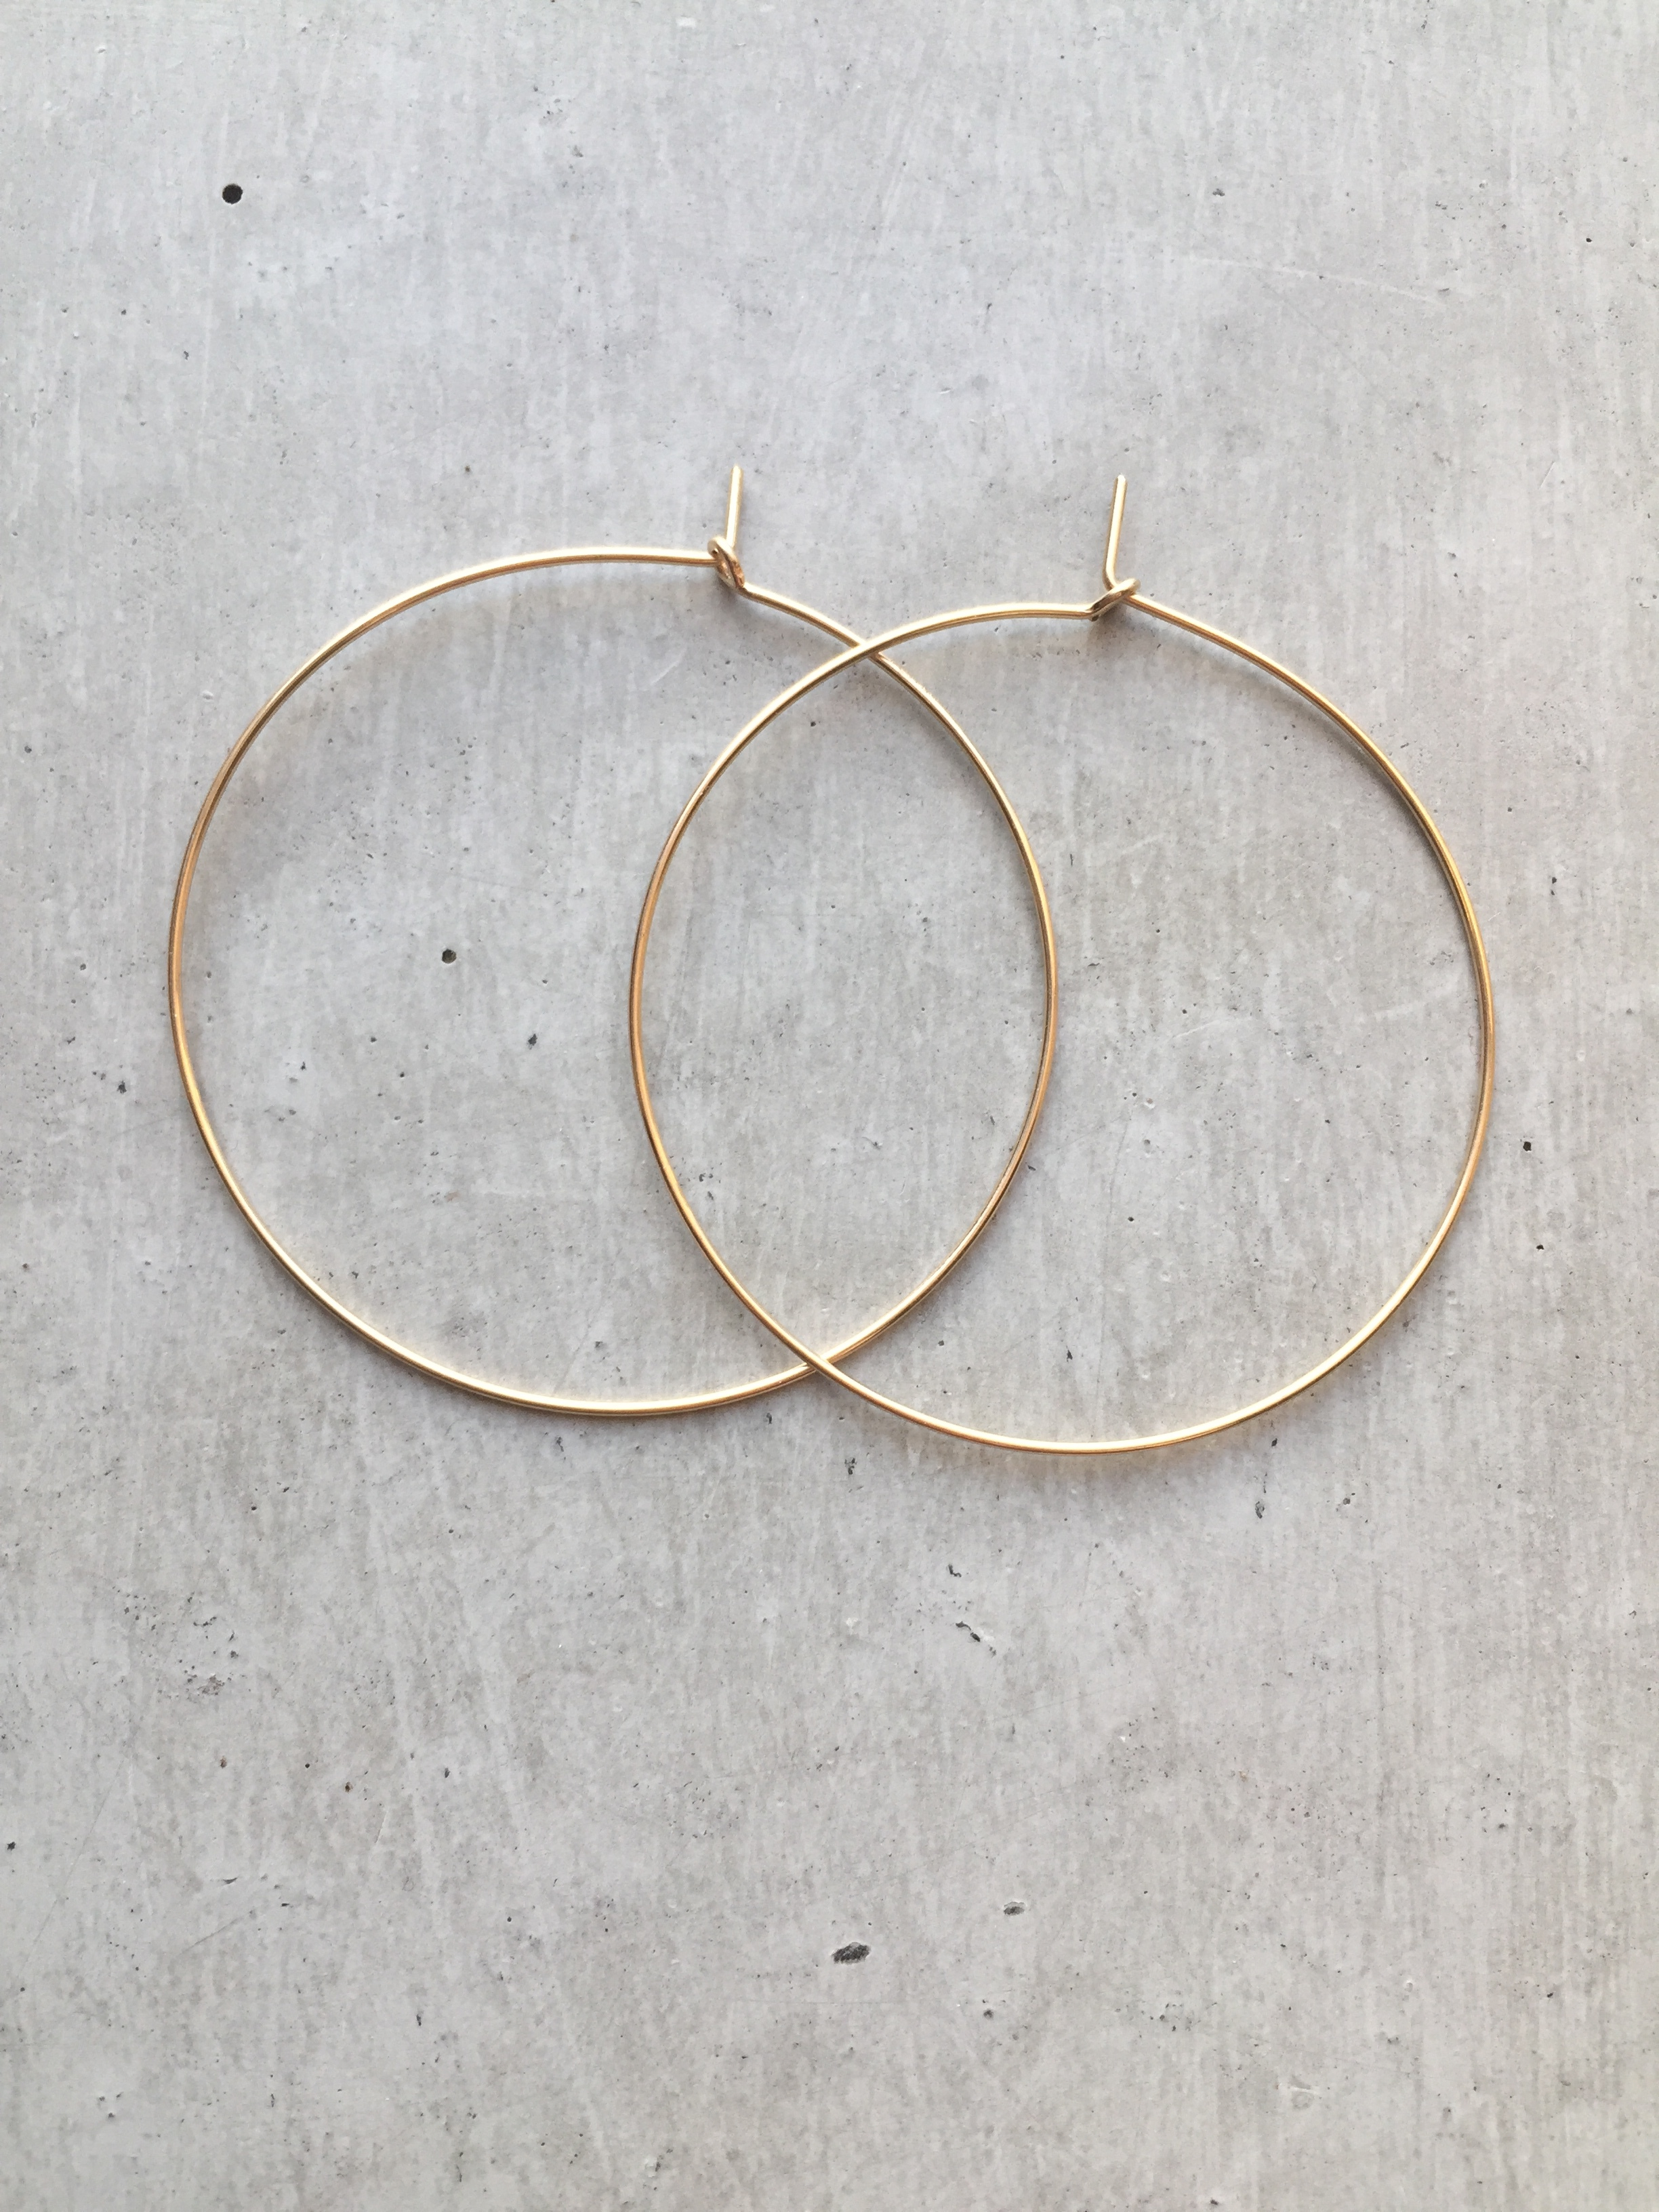 stud summer ashley earrings singapore minimalist vintage gold small thick hoop jewellery shop co